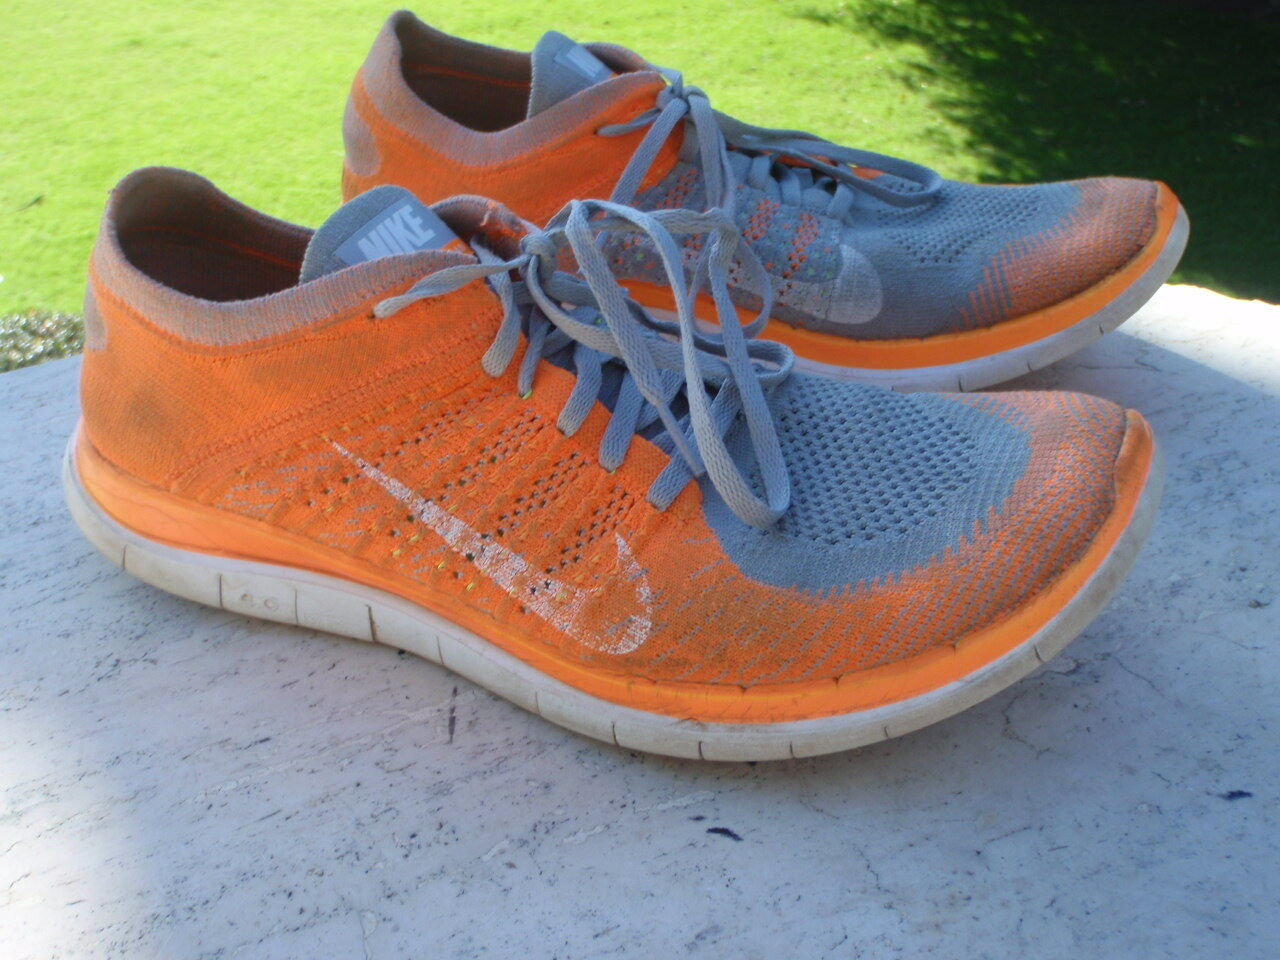 13247a69174 Nike Free Flyknit 4.0 Wolf Wolf Wolf Grey Hyper Crimson Orange white 11  c97c39. Feetmat Men's Sneakers Lightweight Breathable Mesh Gym ...